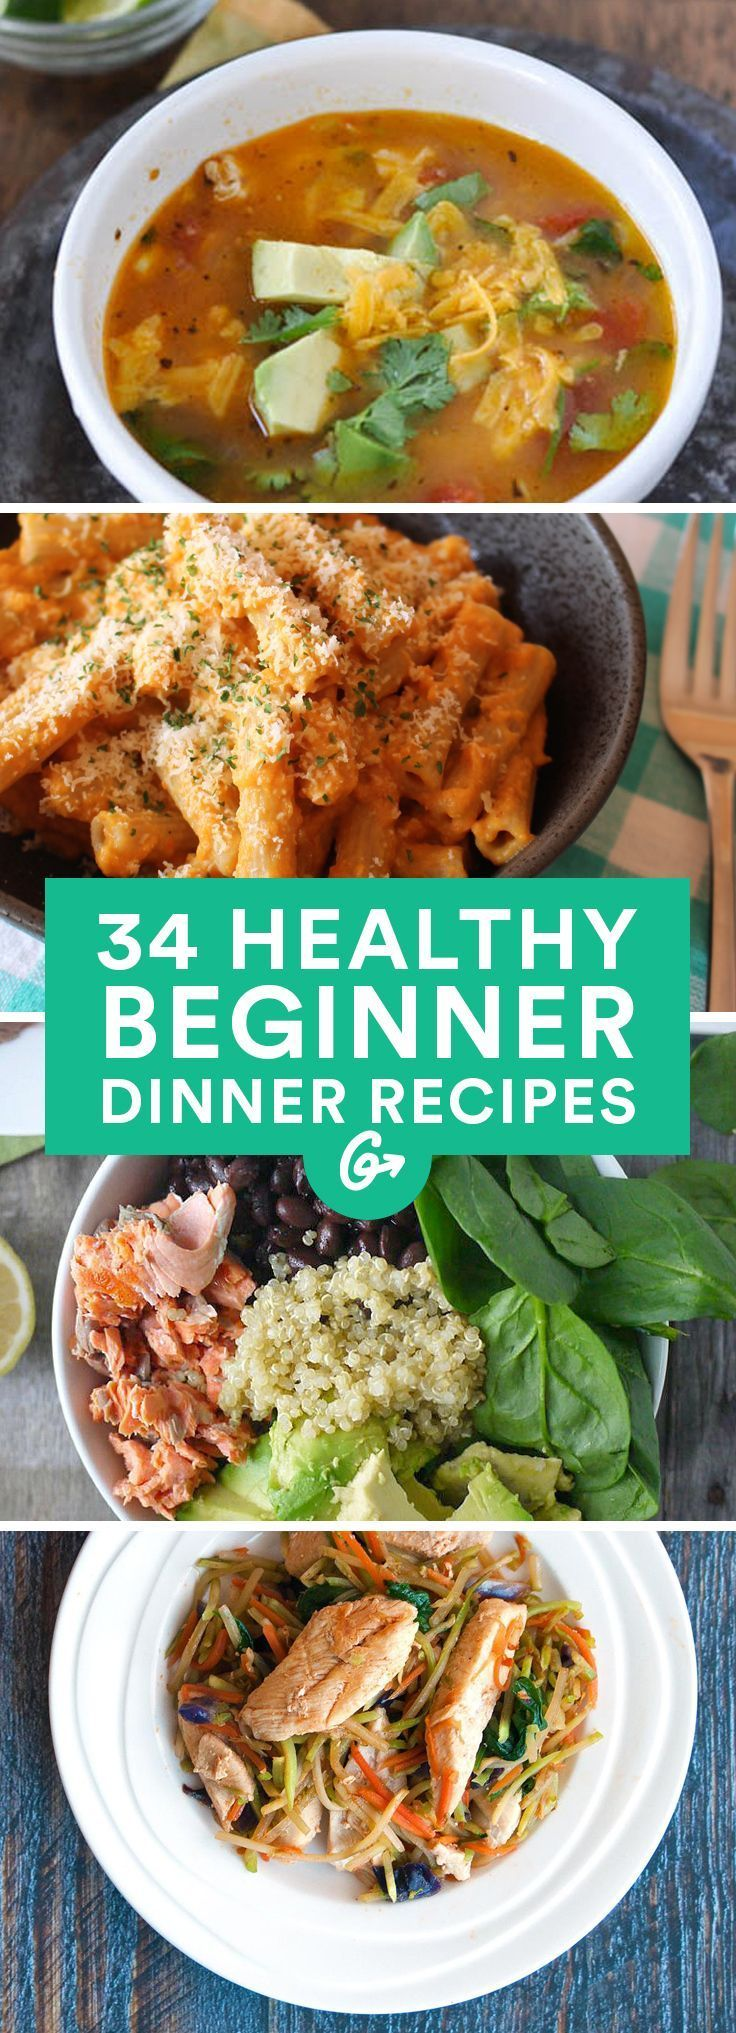 100 healthy dinner recipes on pinterest easy healthy for Recipes with minimal ingredients